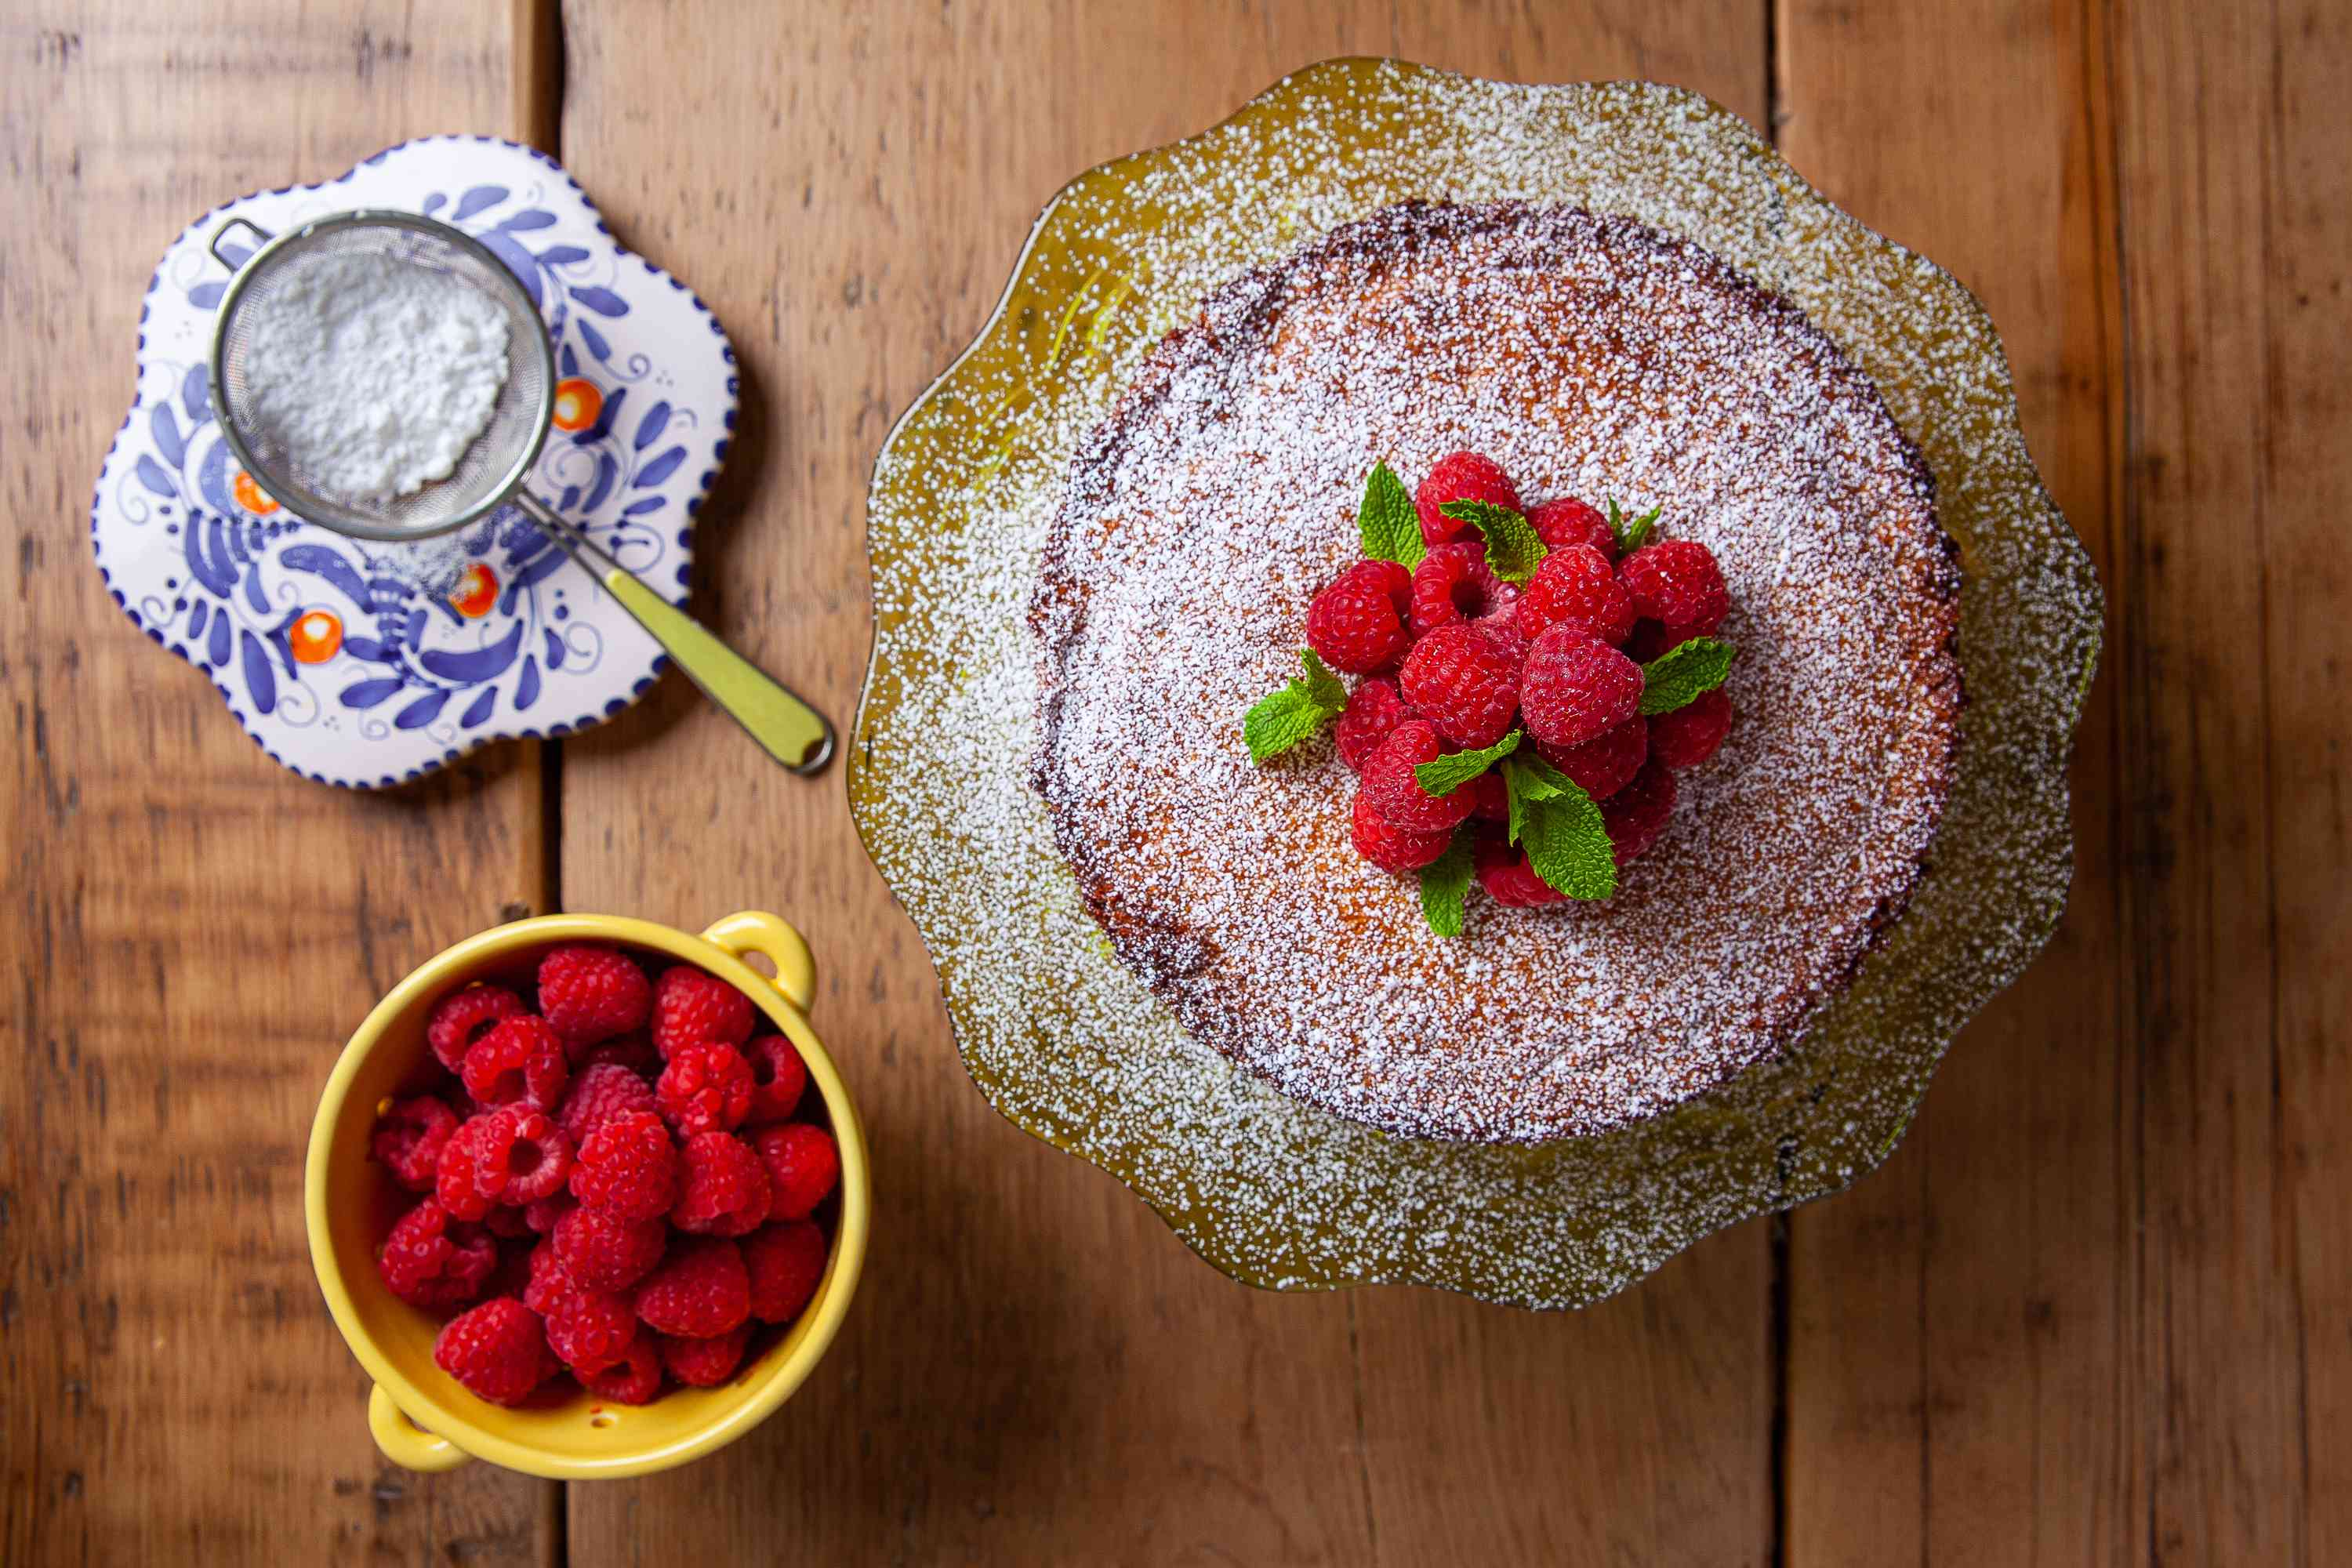 Top the Gluten-Free Coconut Cake with fruit